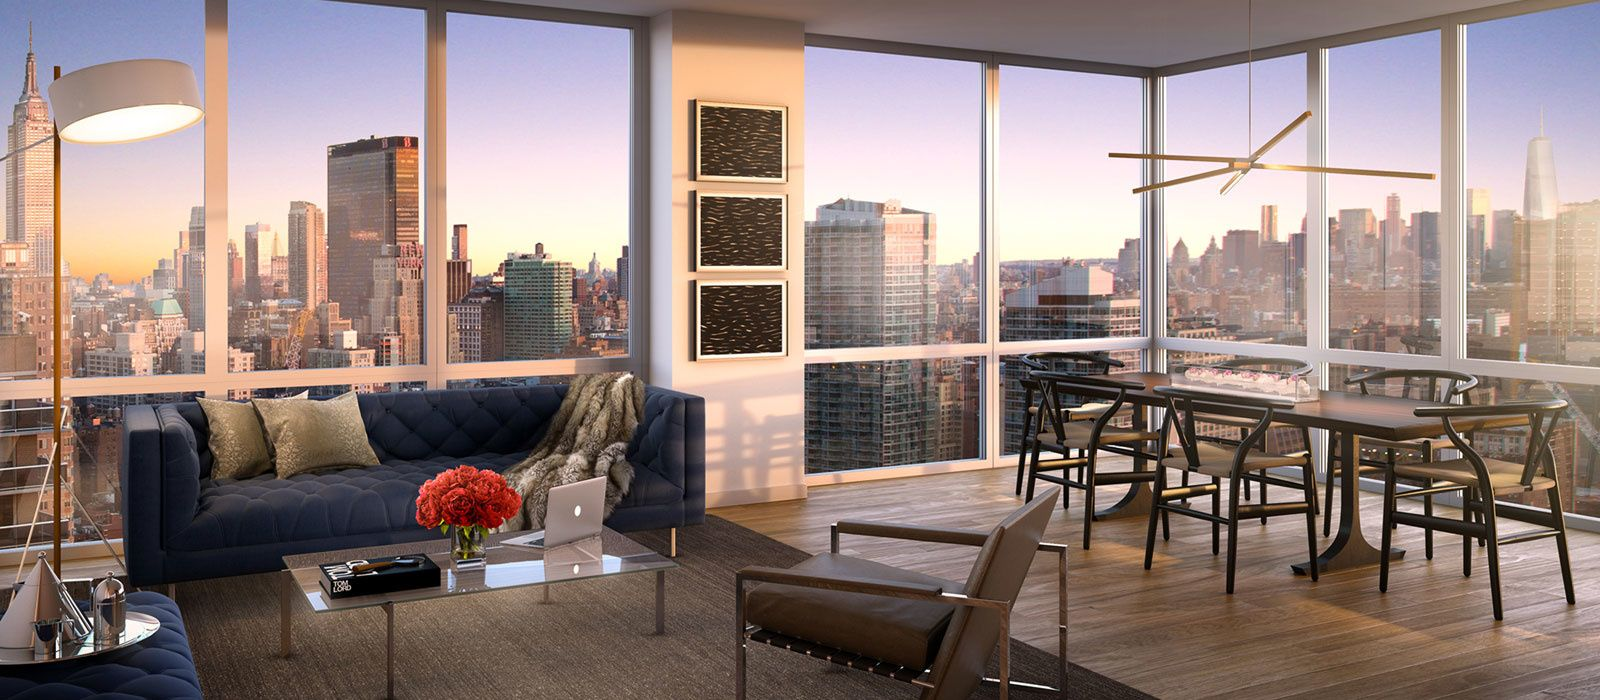 Luxury Residential Apartments Nyc